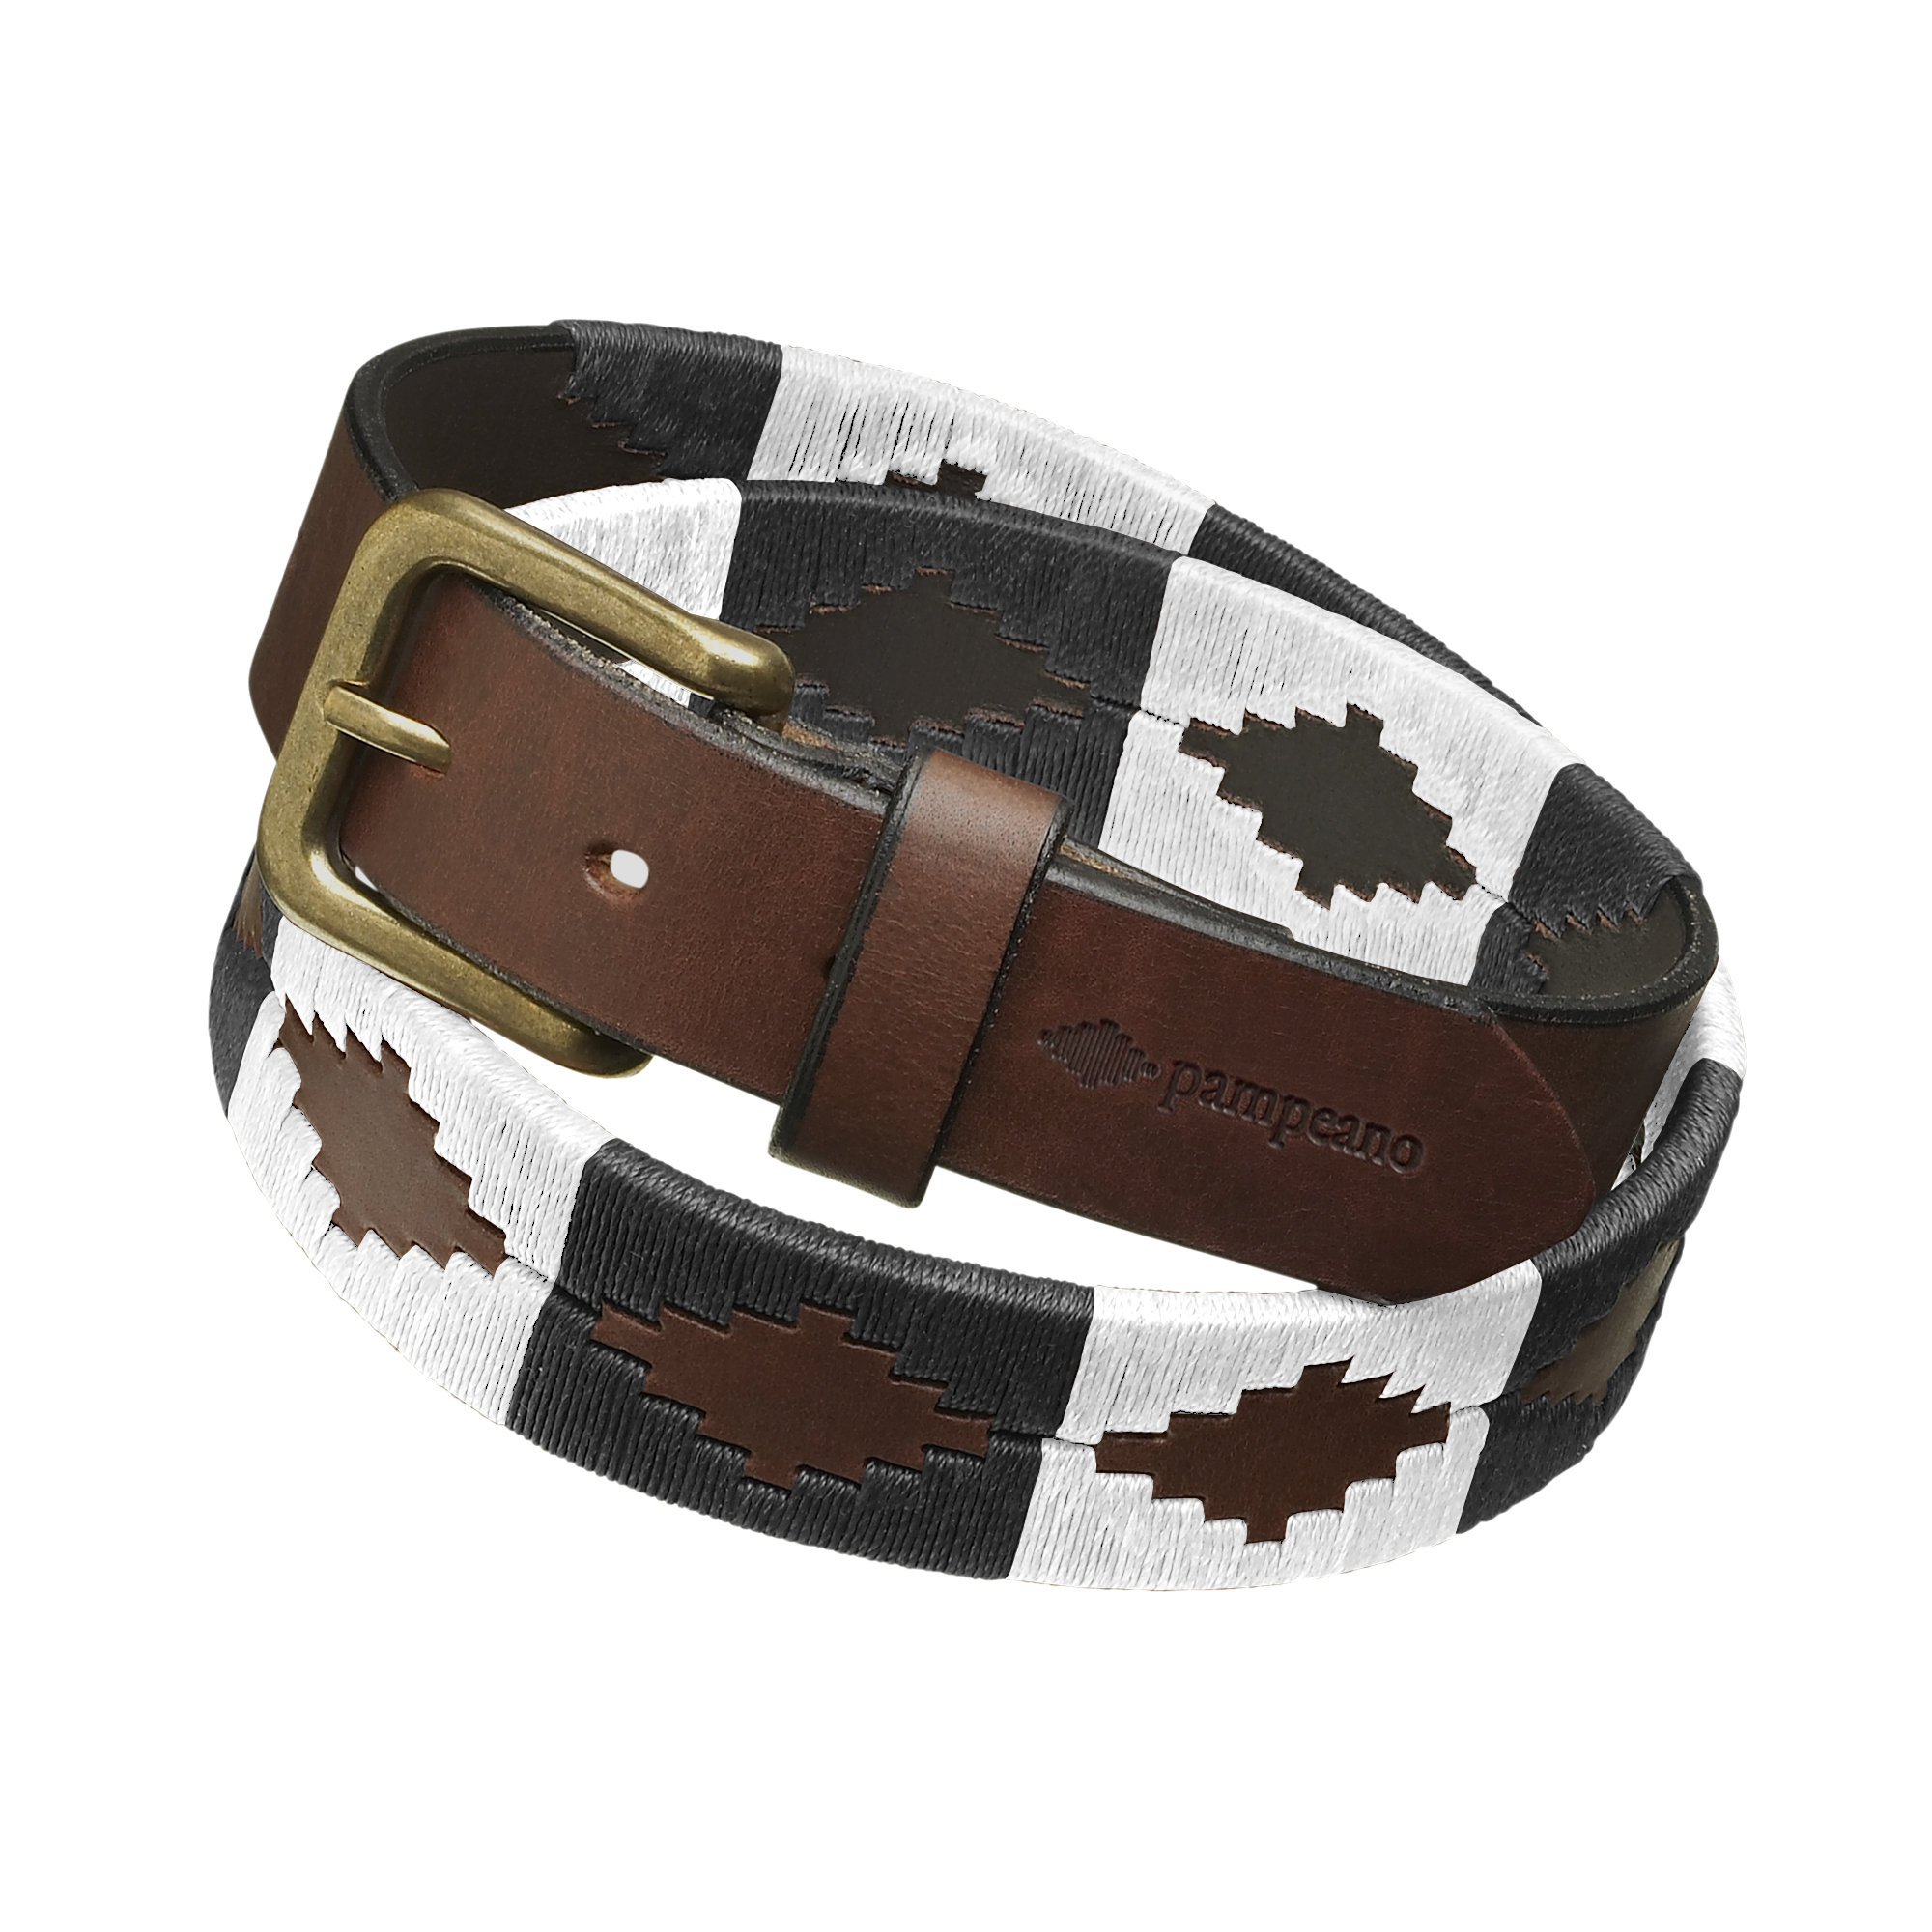 pampeano - Polo Belt - Tizon